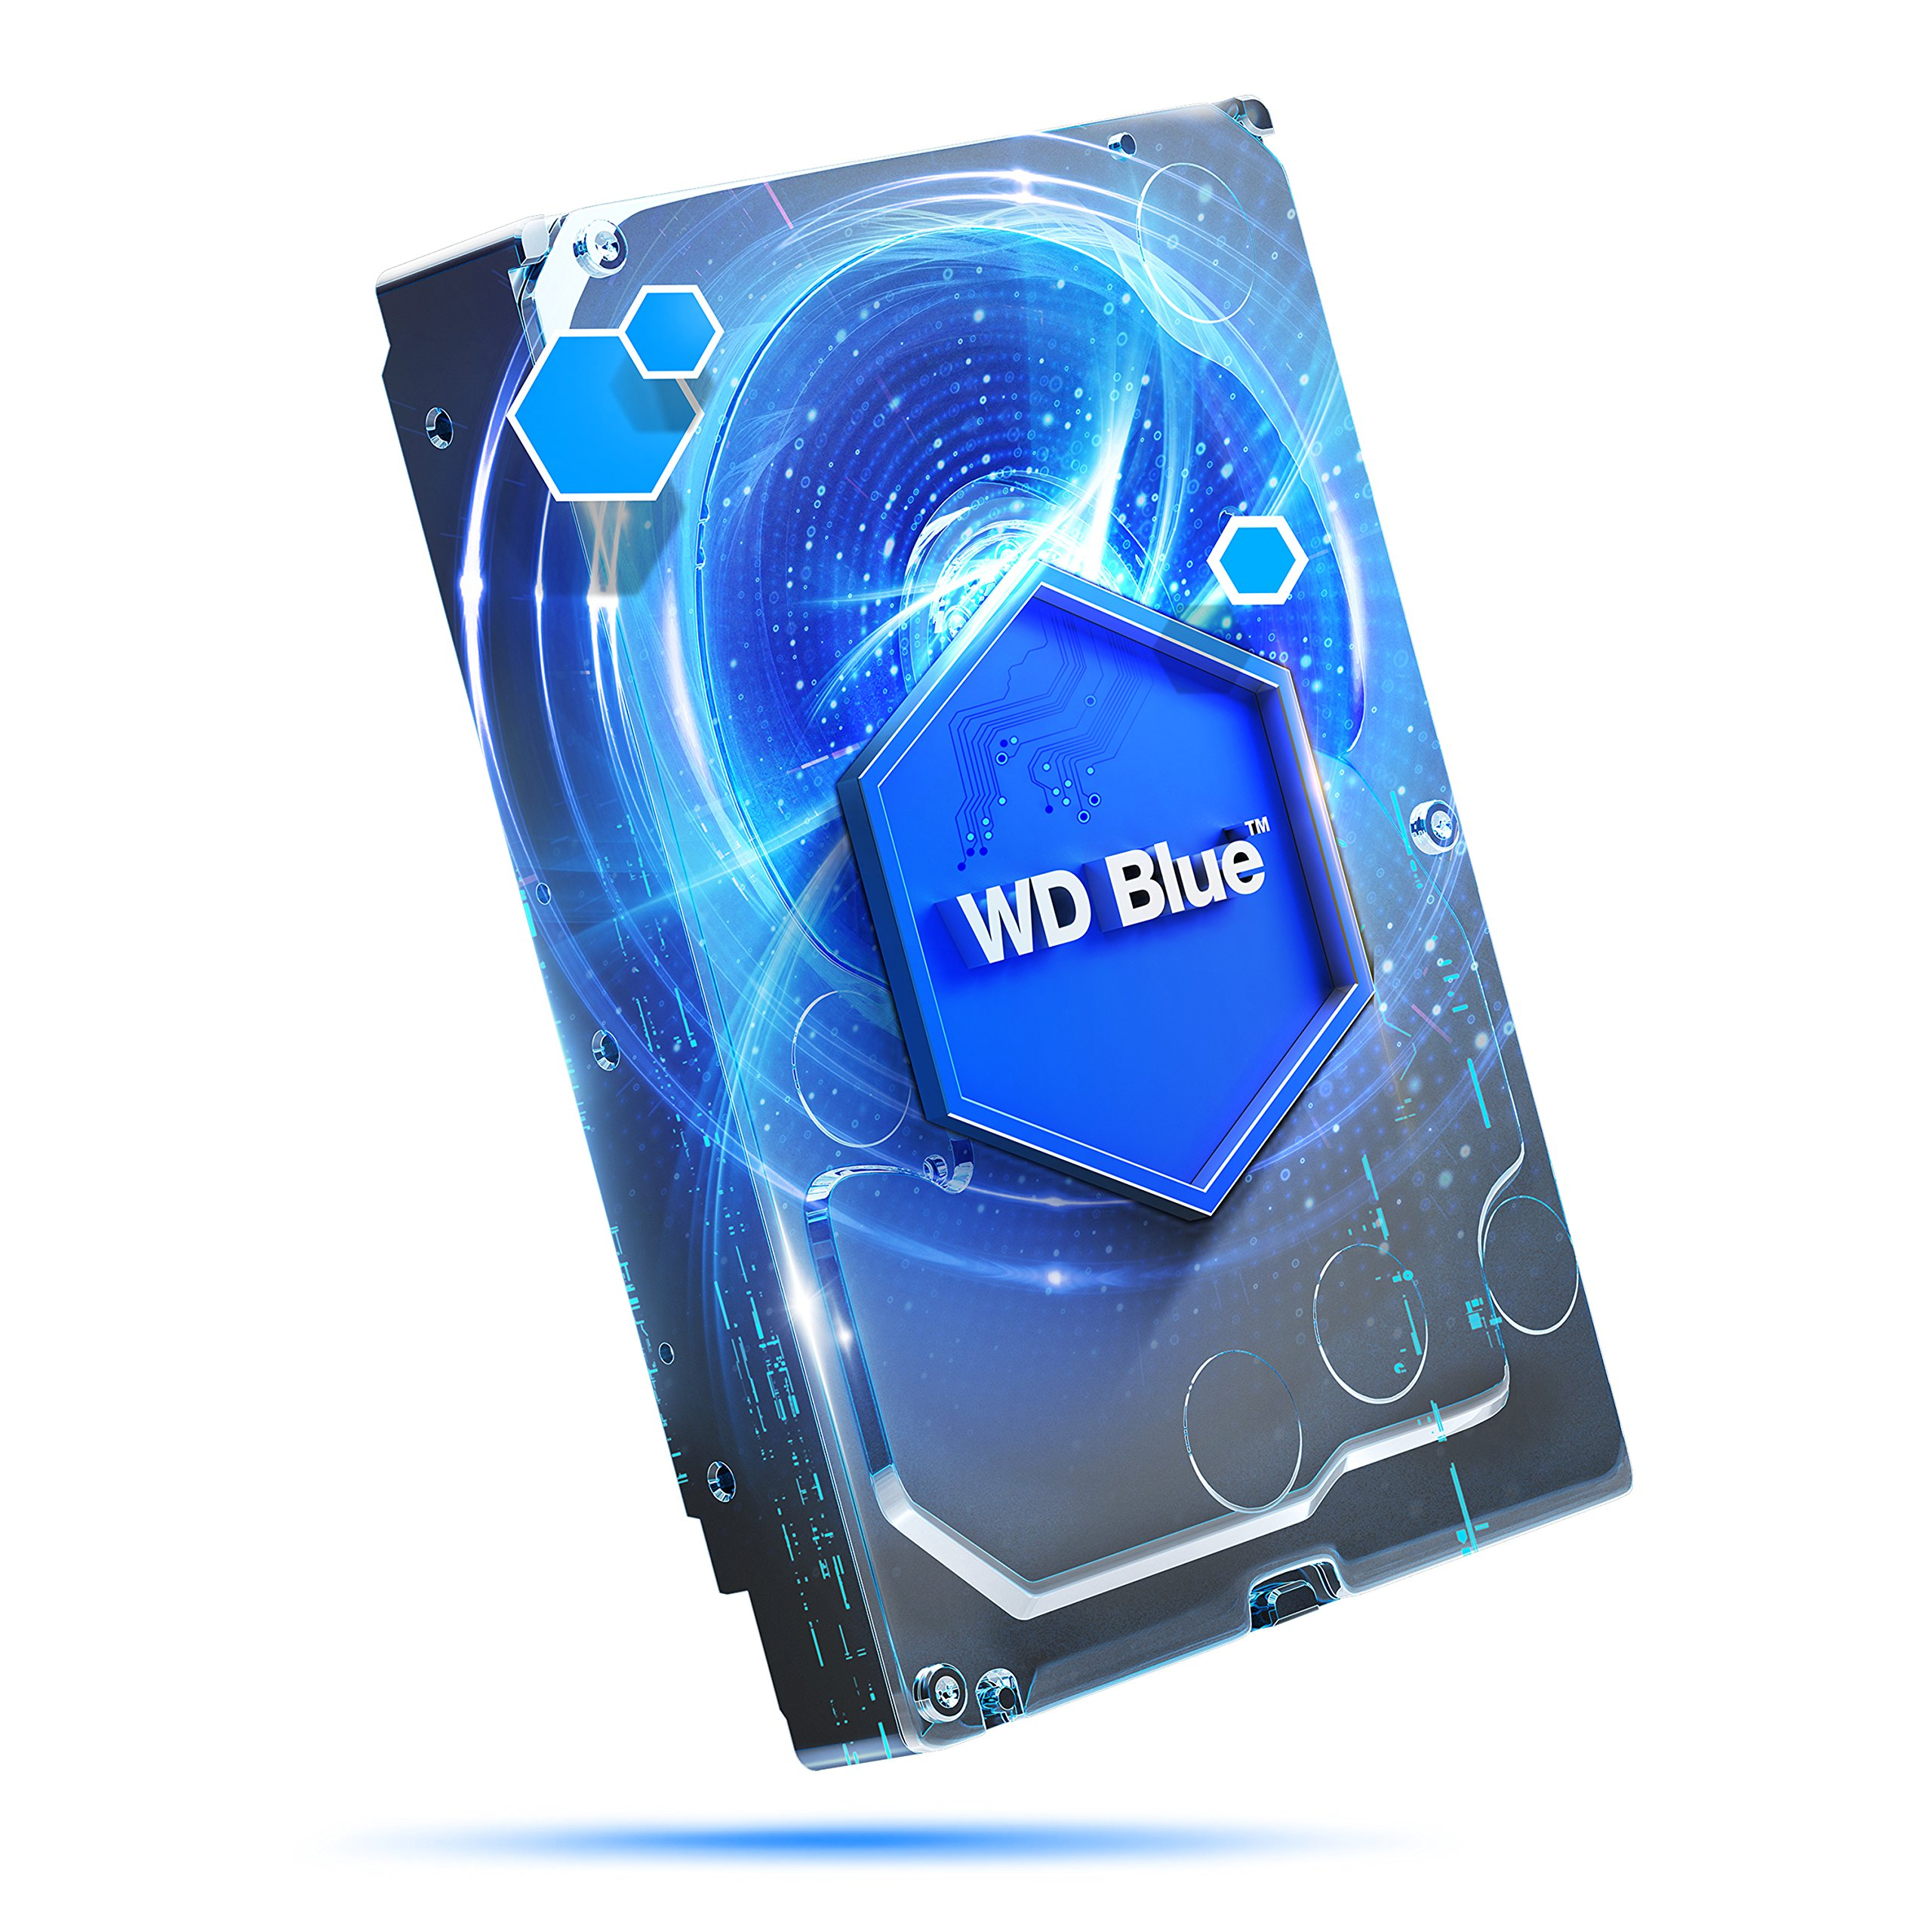 WD Blue 500GB Desktop Hard Disk Drive - 7200 RPM Class SATA 6Gb/s 32MB Cache 3.5 Inch - WD5000AZLX